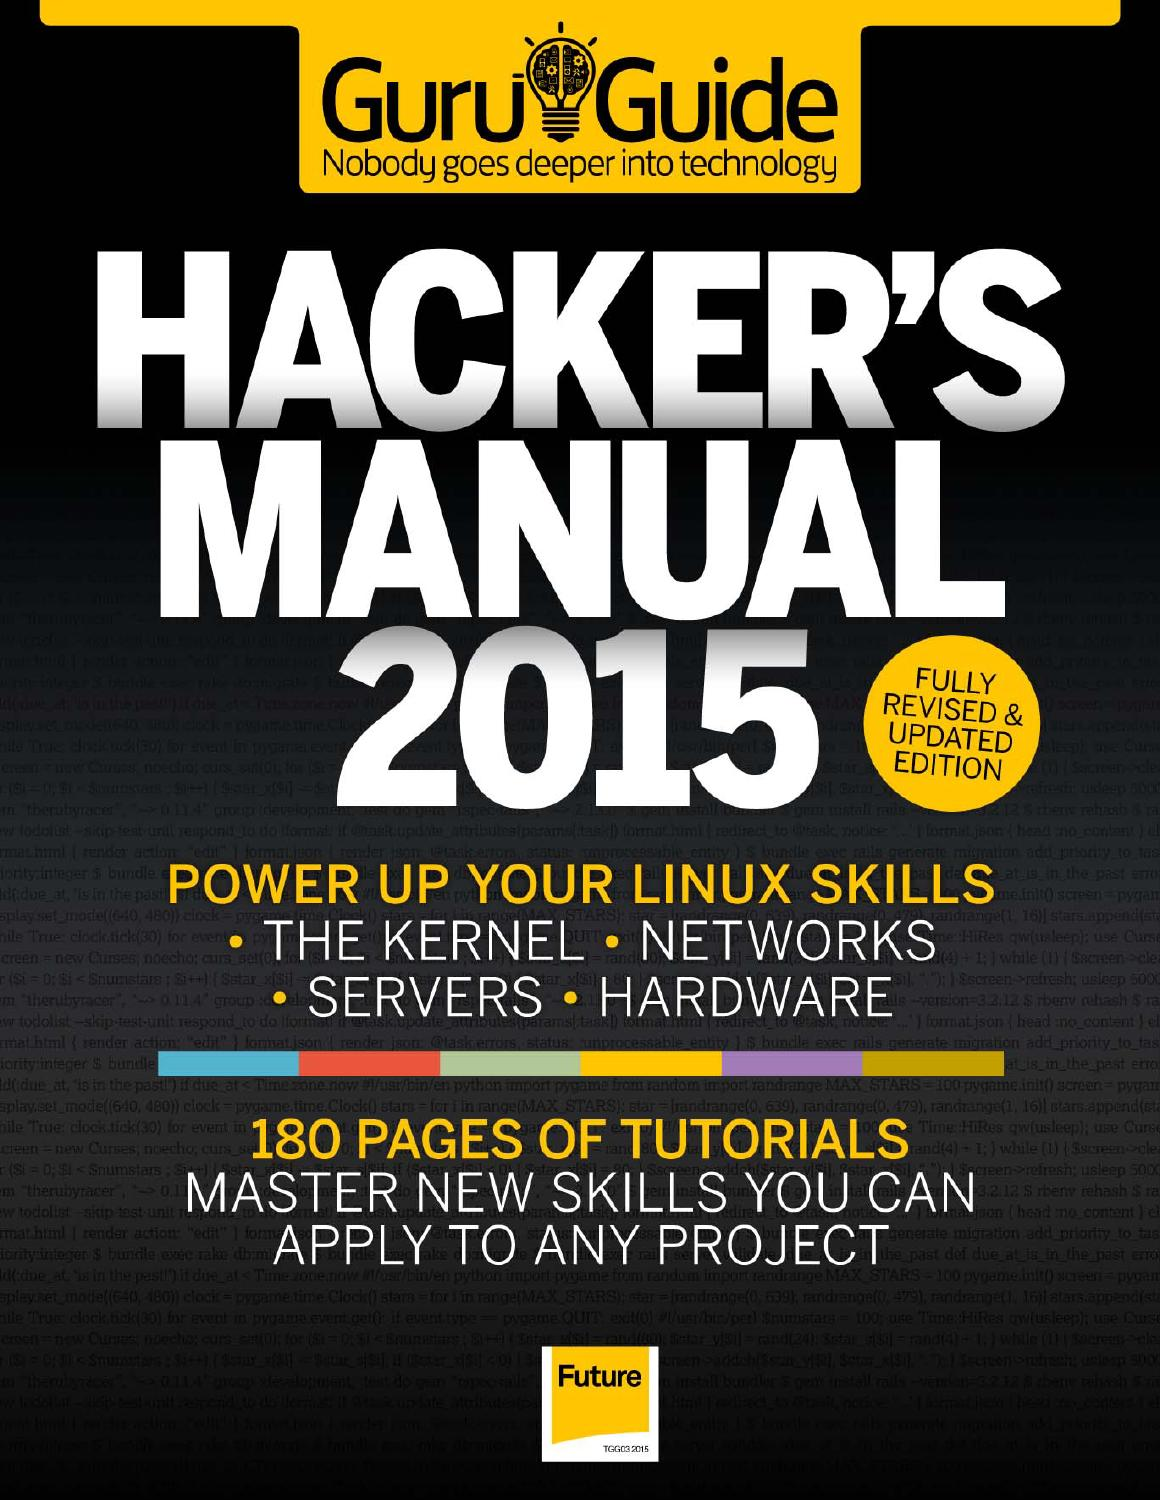 The hackers manual 2015 revised edition by Gerson Villa